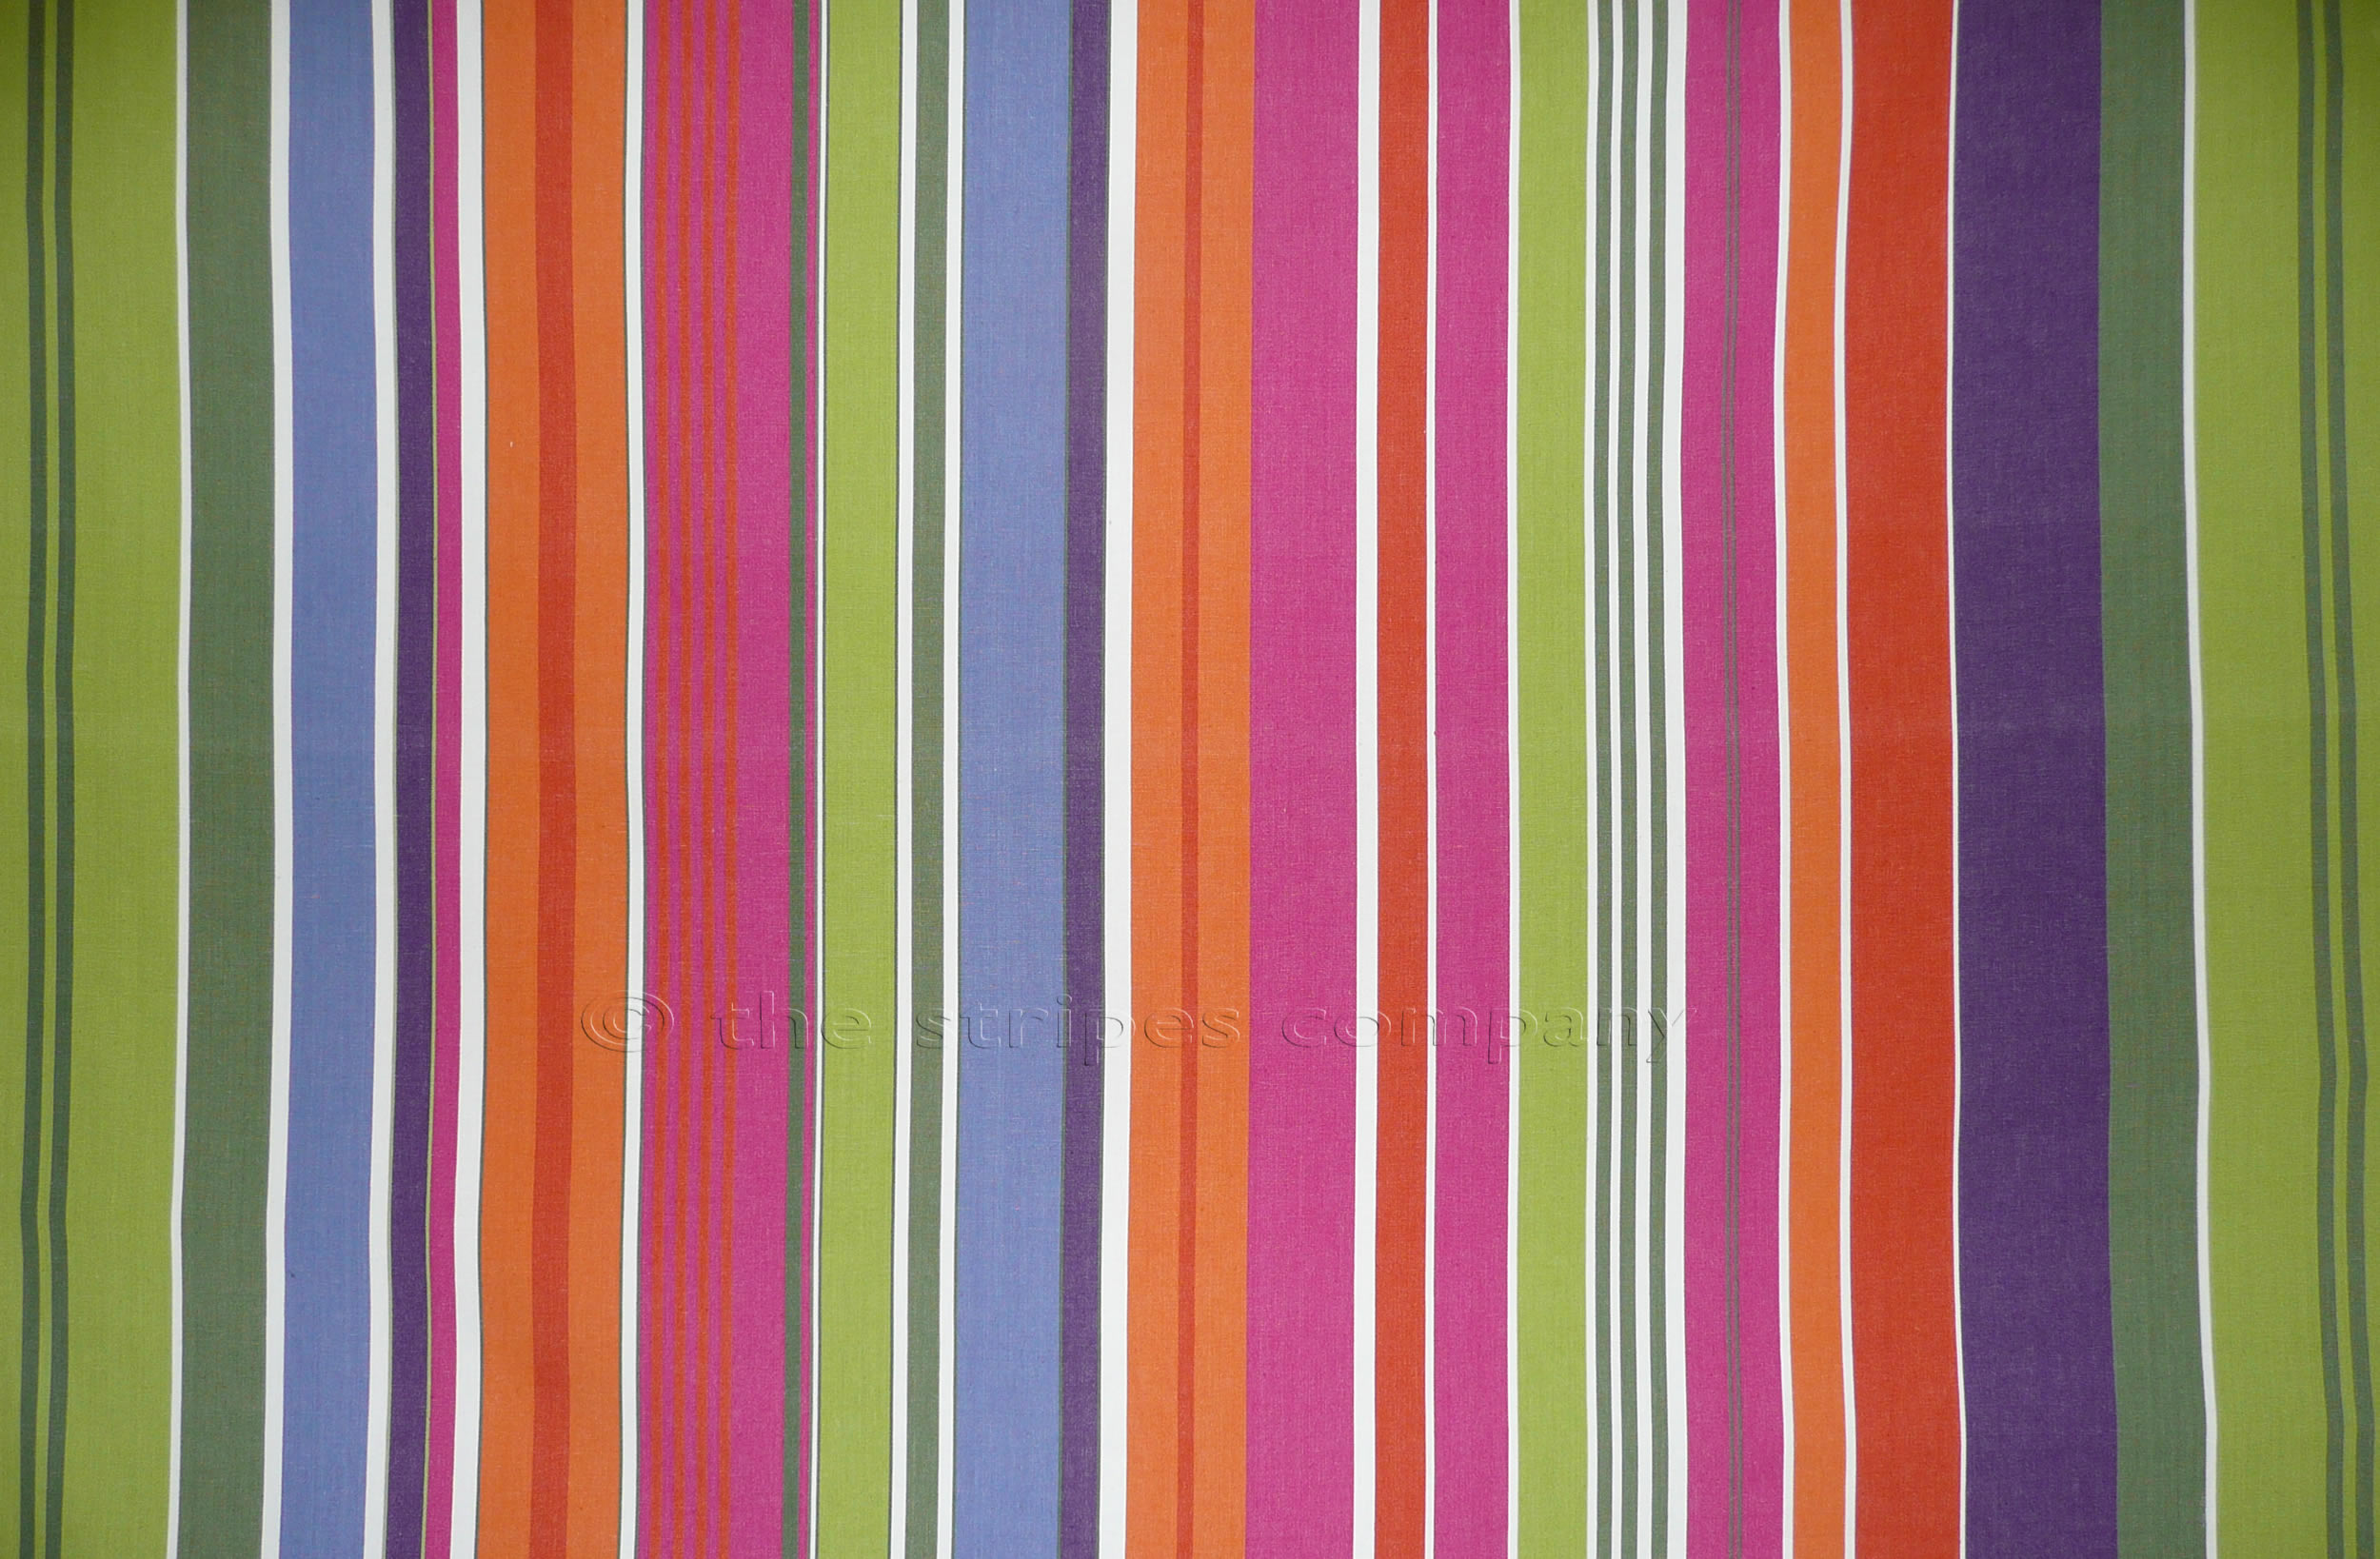 Pink Striped Fabrics | Stripe Cotton Fabrics | Striped Curtain Fabrics | Upholstery Fabrics - Weightlifting Stripes